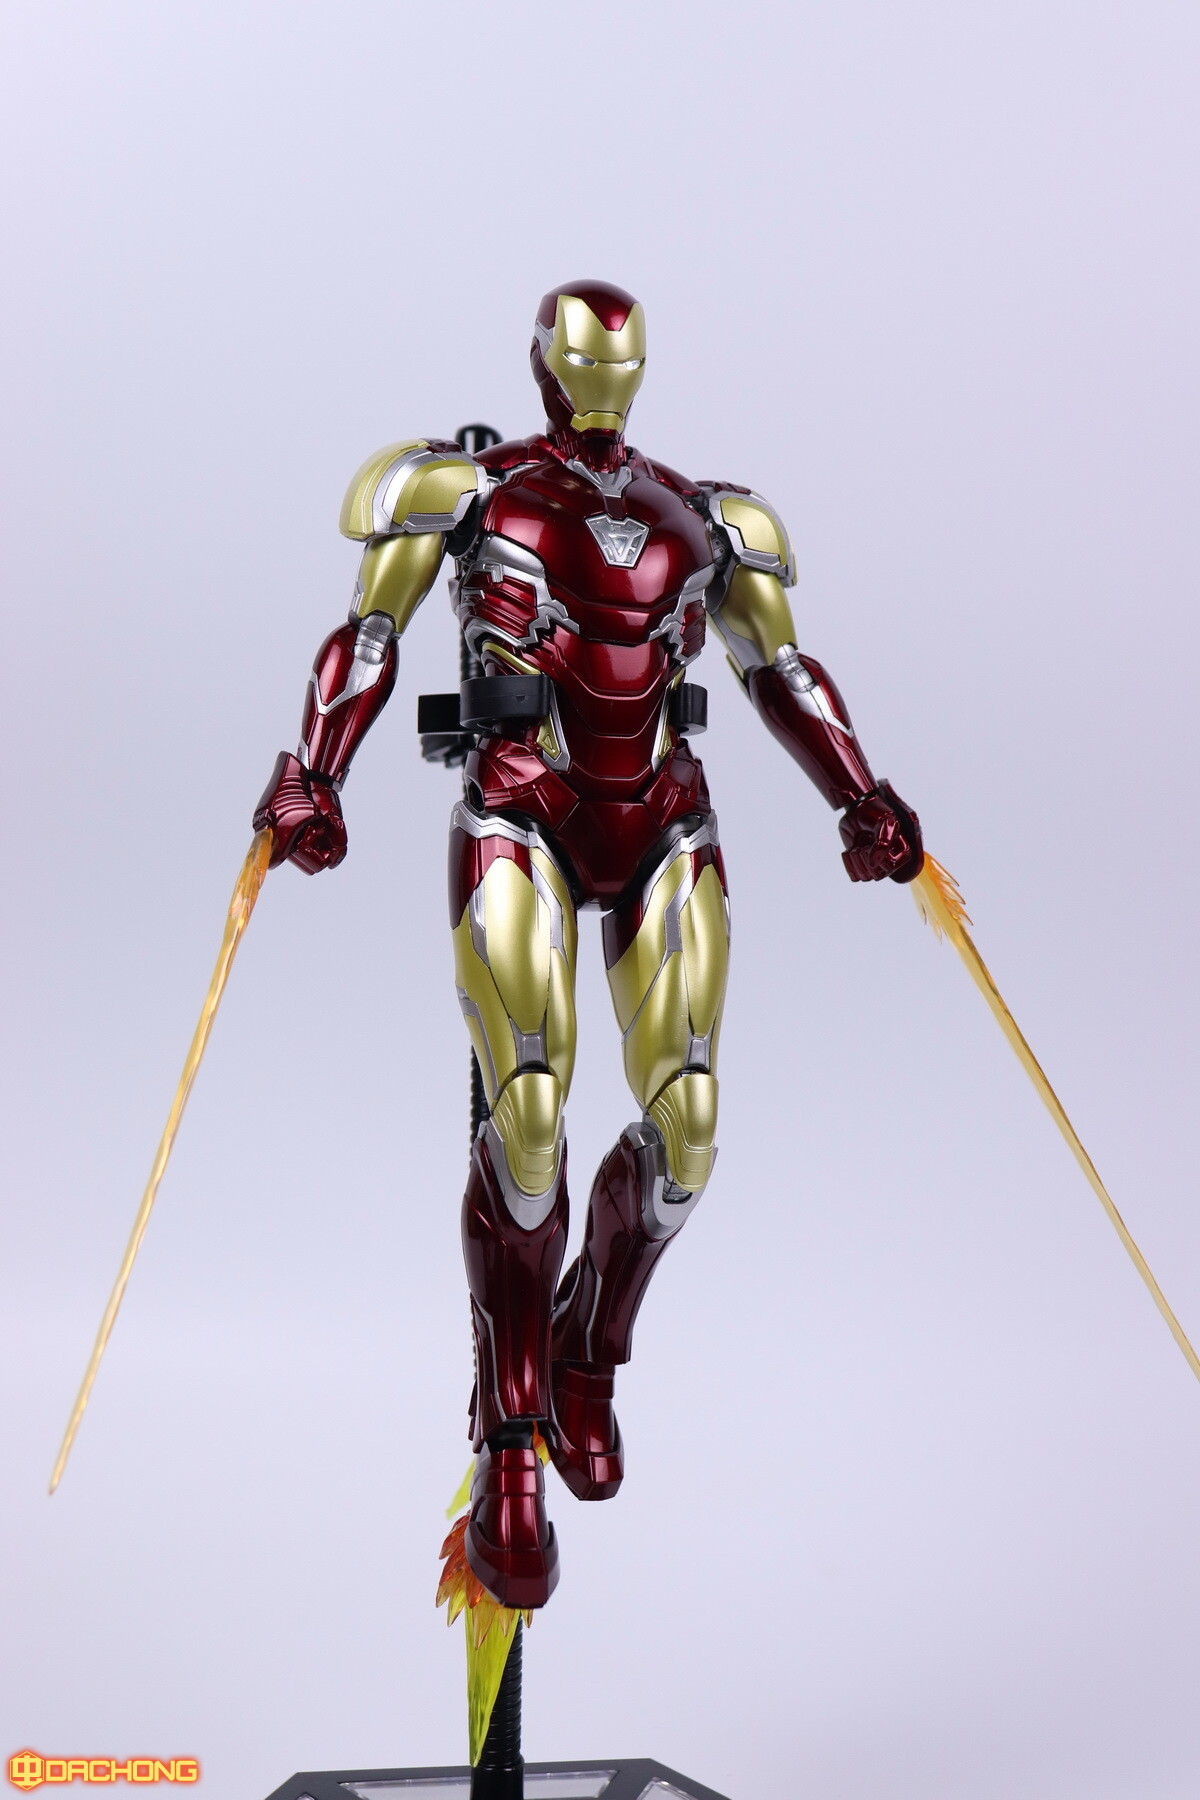 S498_2_e_model_ironman_mk85_dx_105.jpg